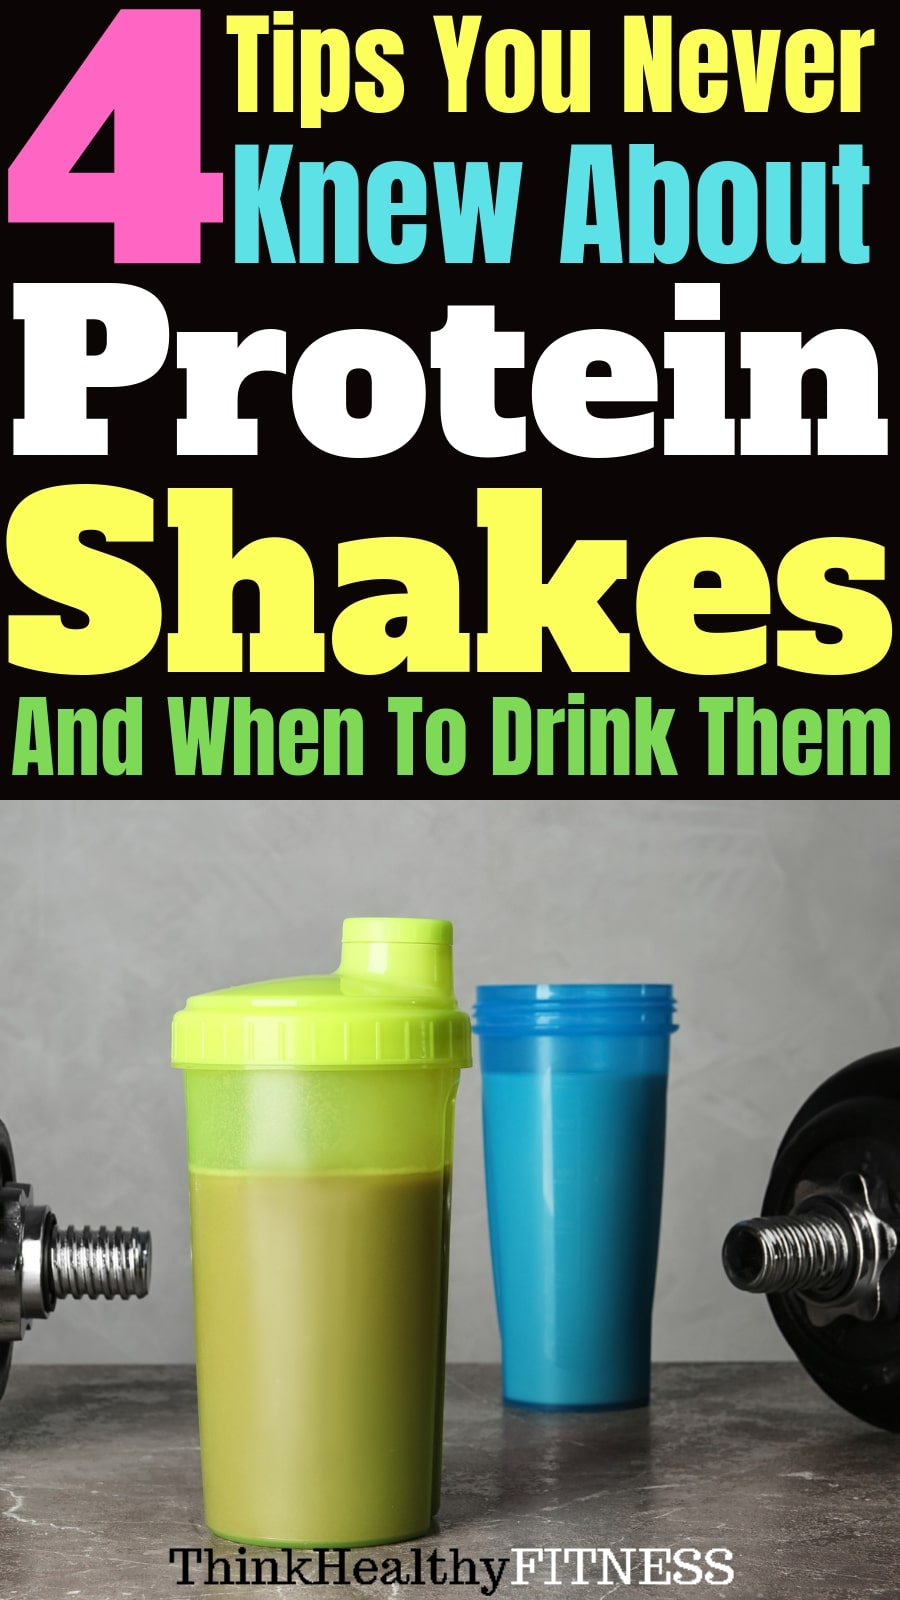 When To Drink Protein Shakes